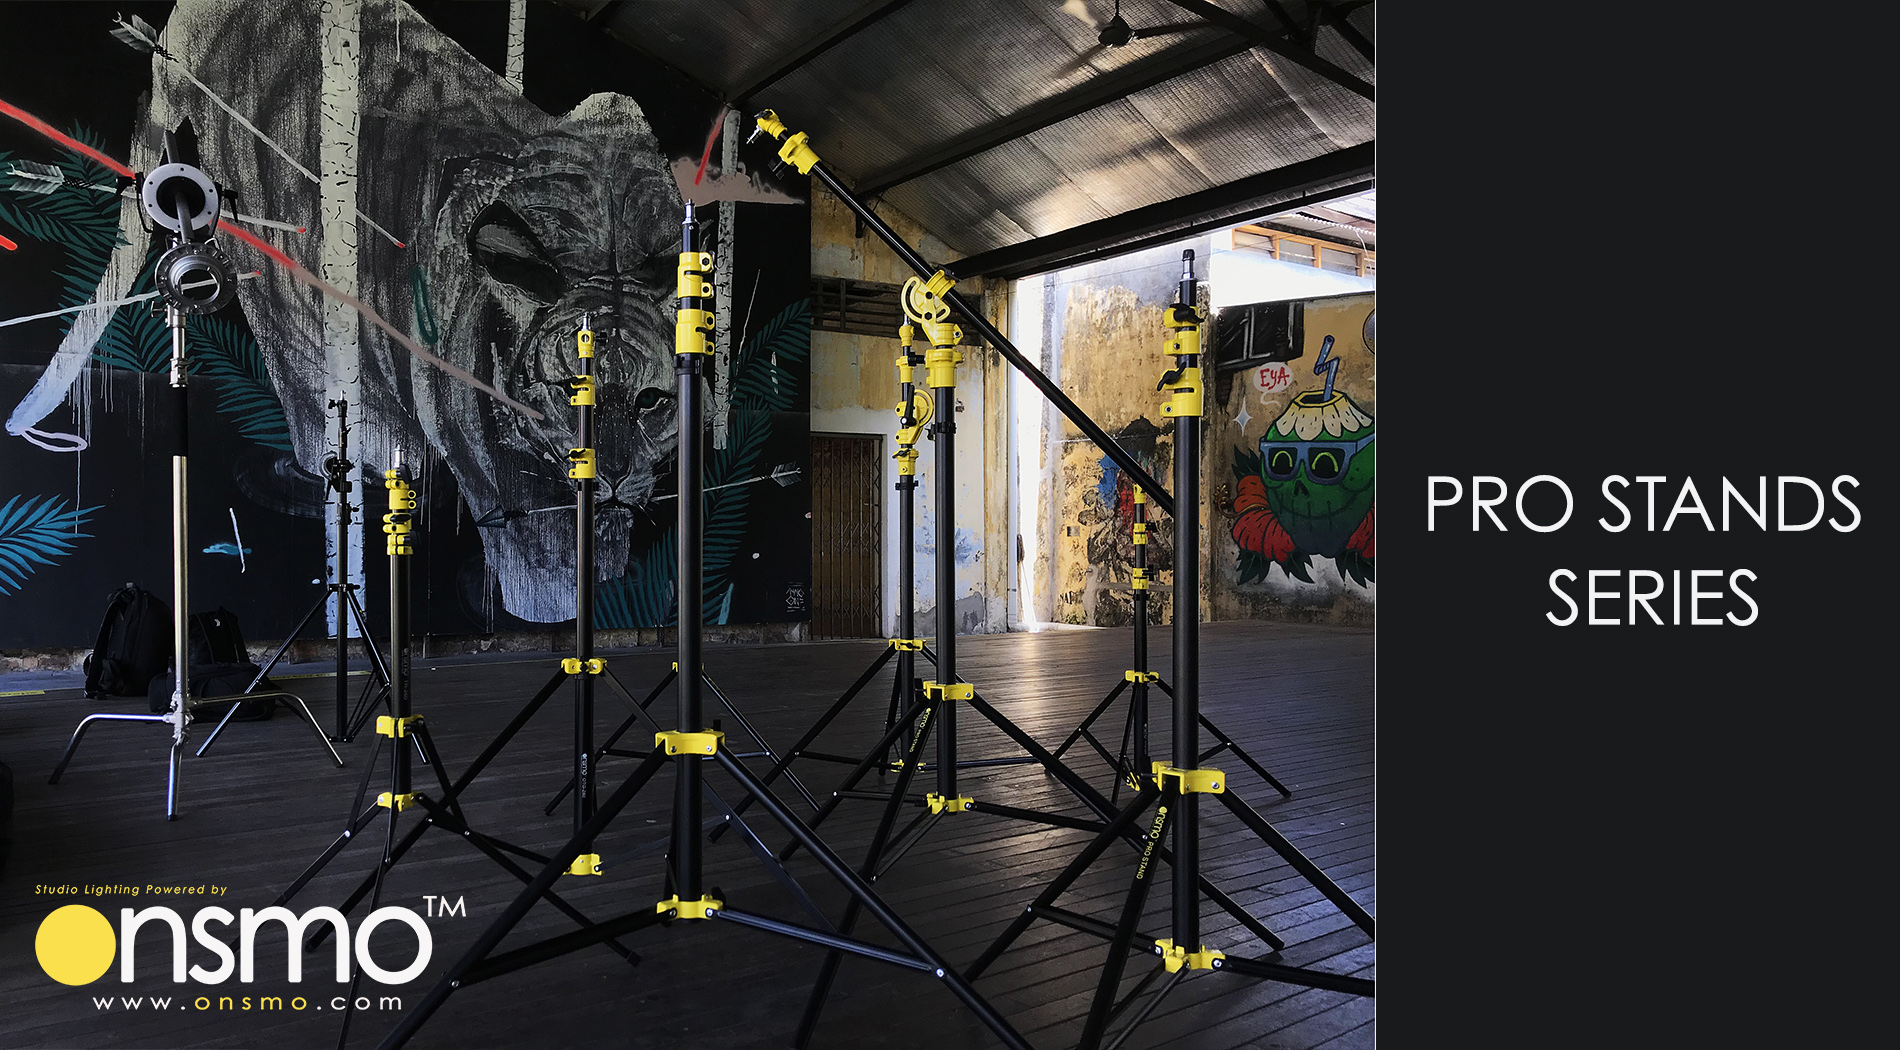 Onsmo Pro Stands Series